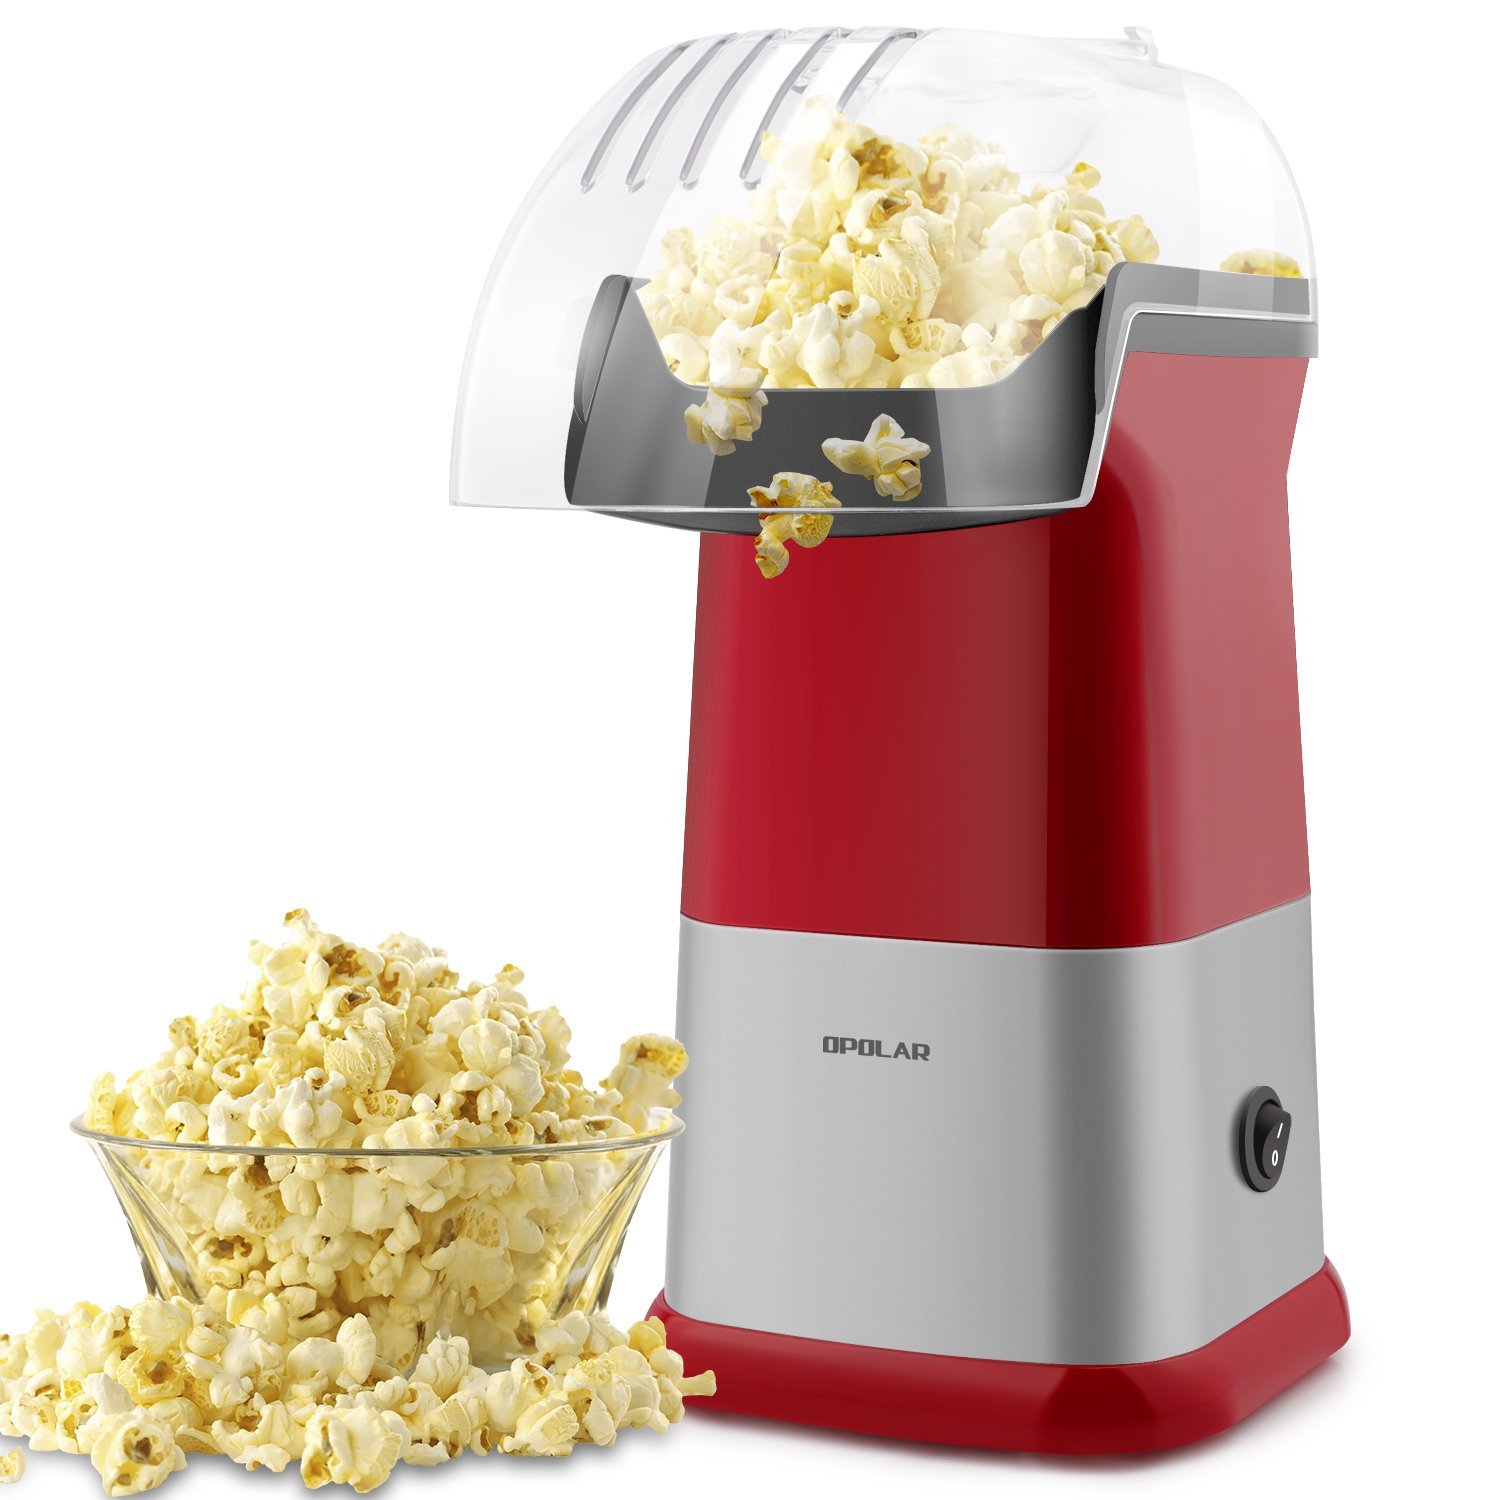 OPOLAR Fast Hot Air Popcorn Popper Machine, No Oil Popcorn Maker with Measuring Cup and Removable Top Cover, Ideal for Watching Movies and Holding Parties in Home, Healthy, 1200W, BPA-Free